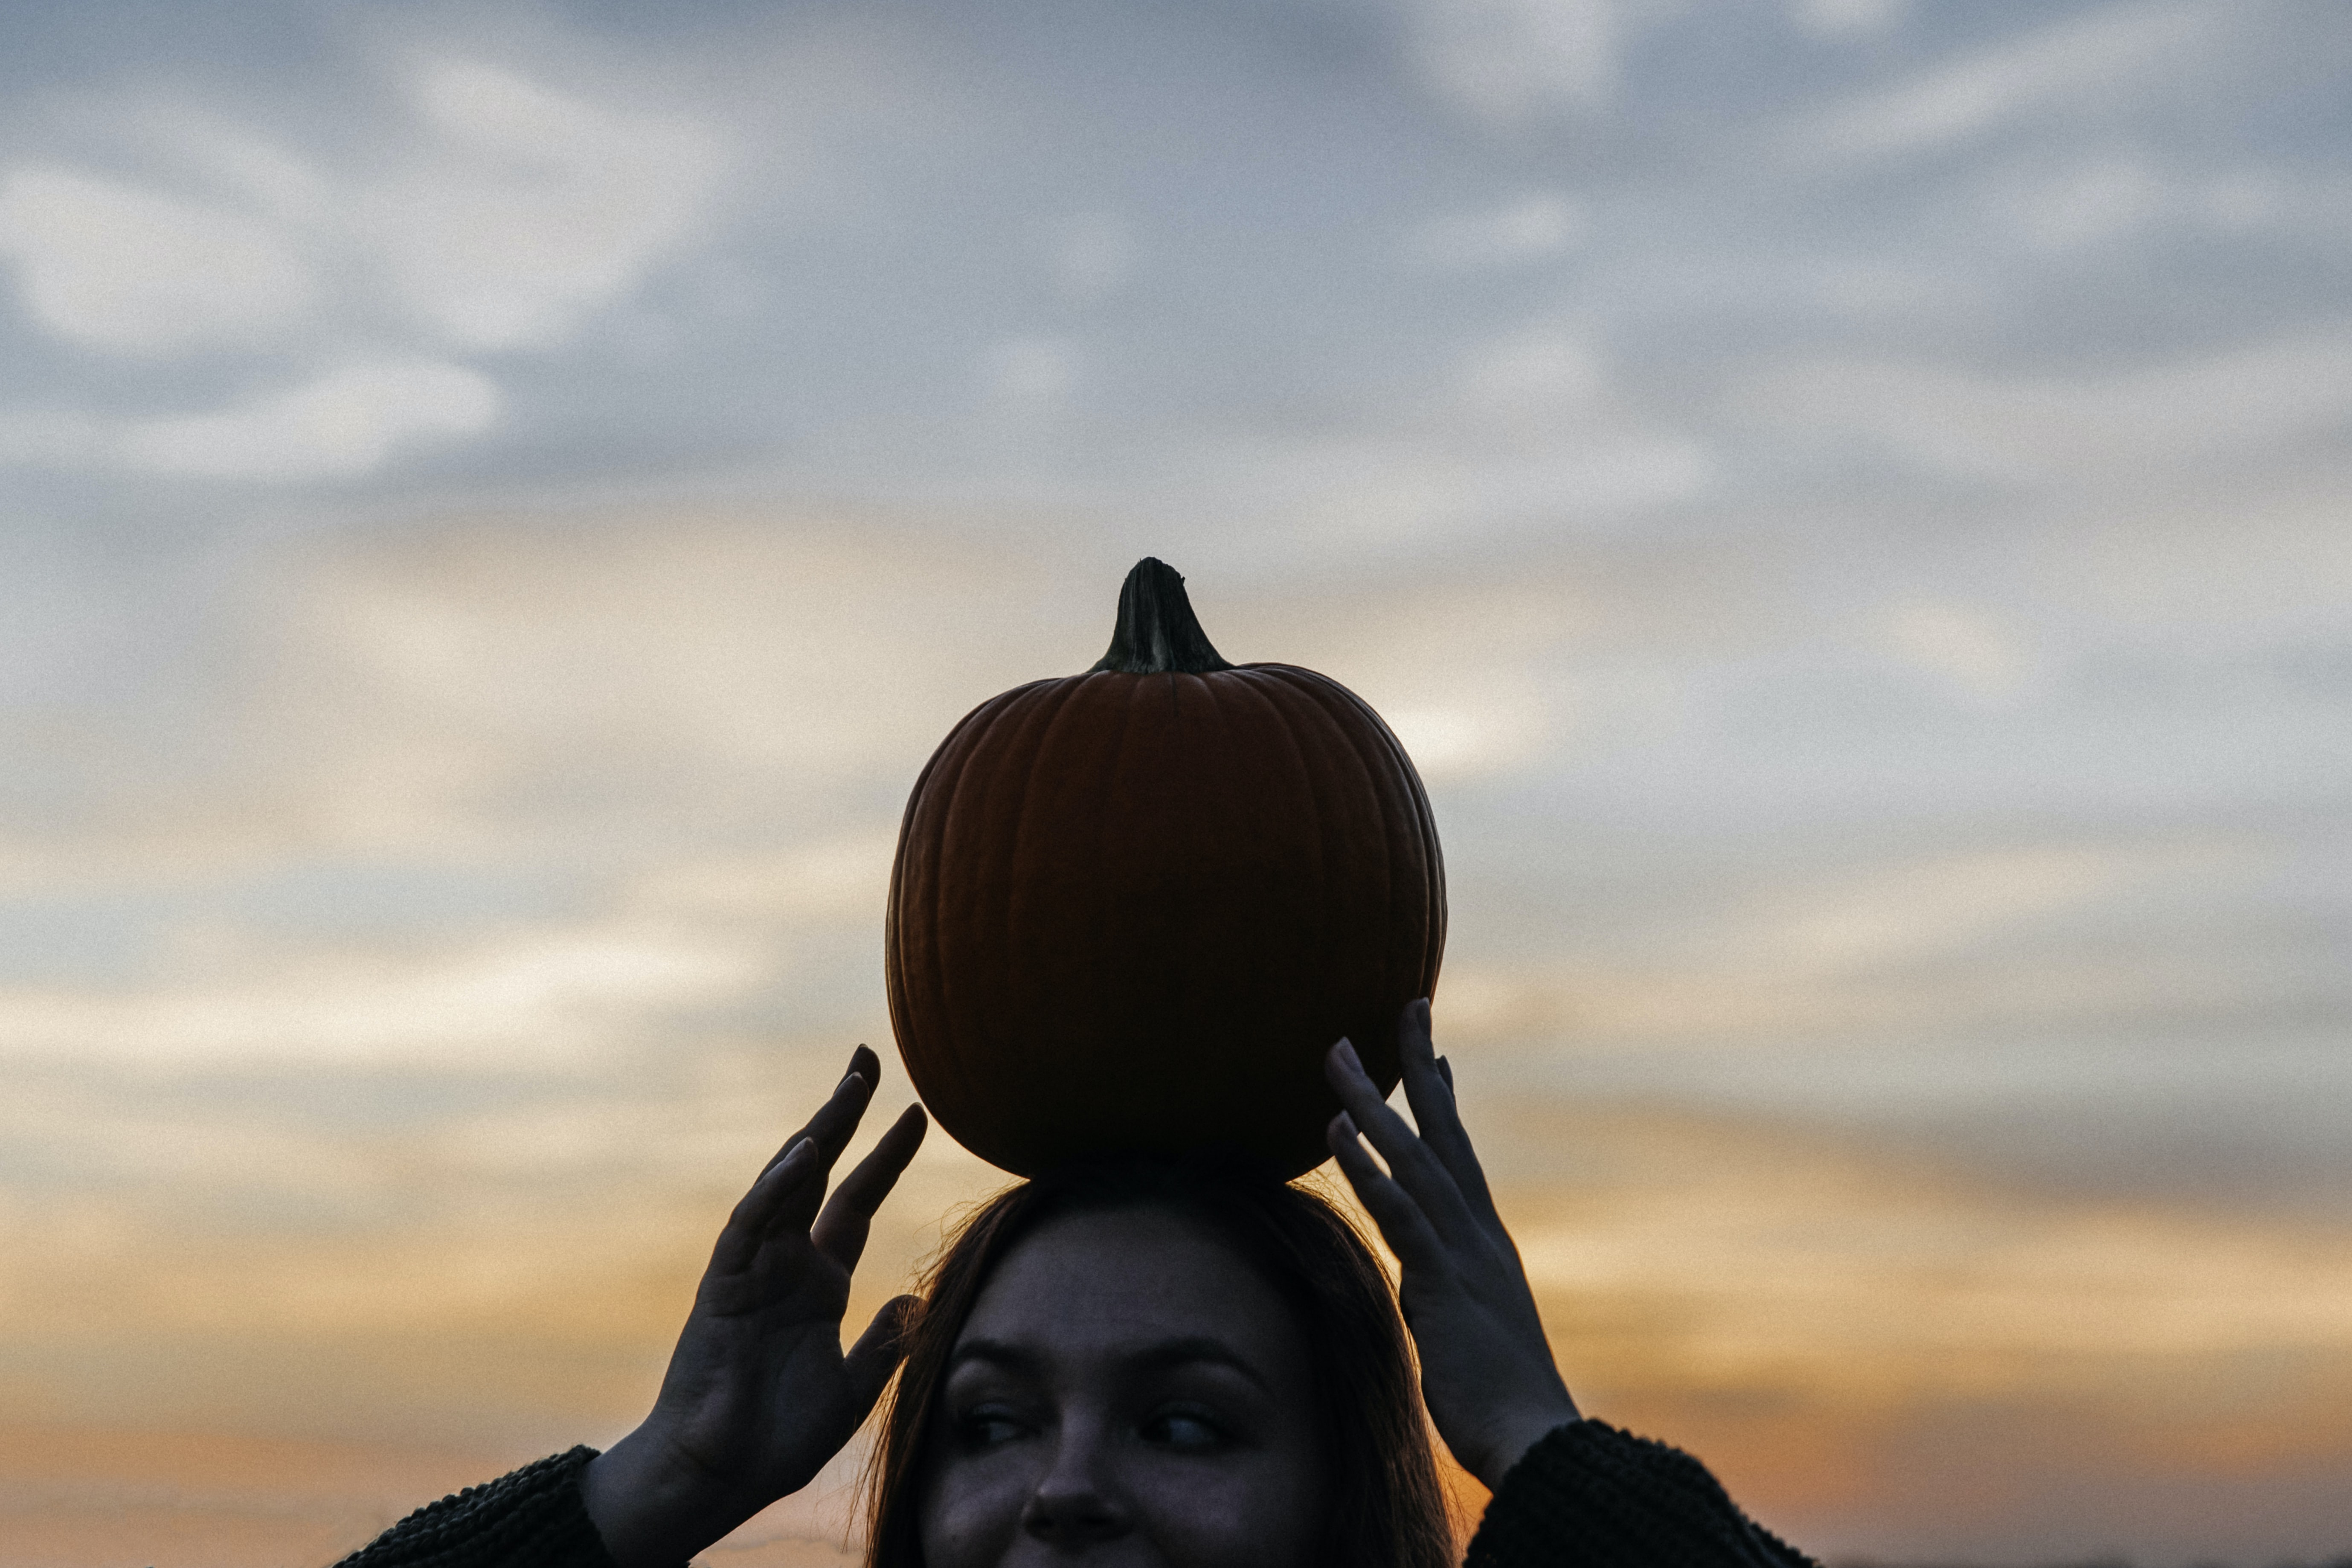 woman carrying pumpkin on head